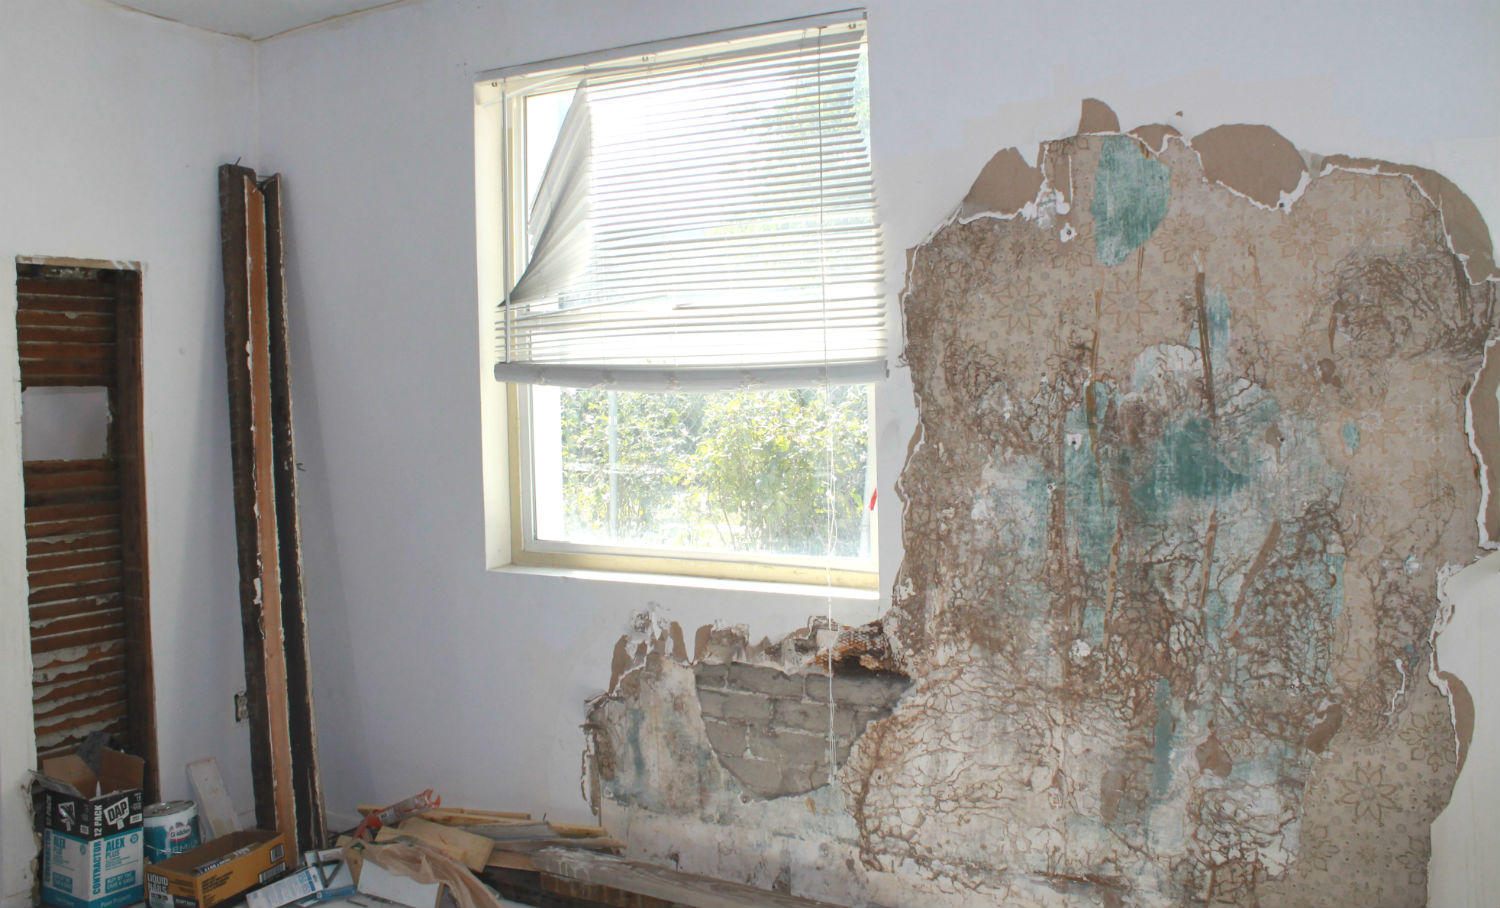 Waukesha Rental Property Being Restored After Mold Remediation Services